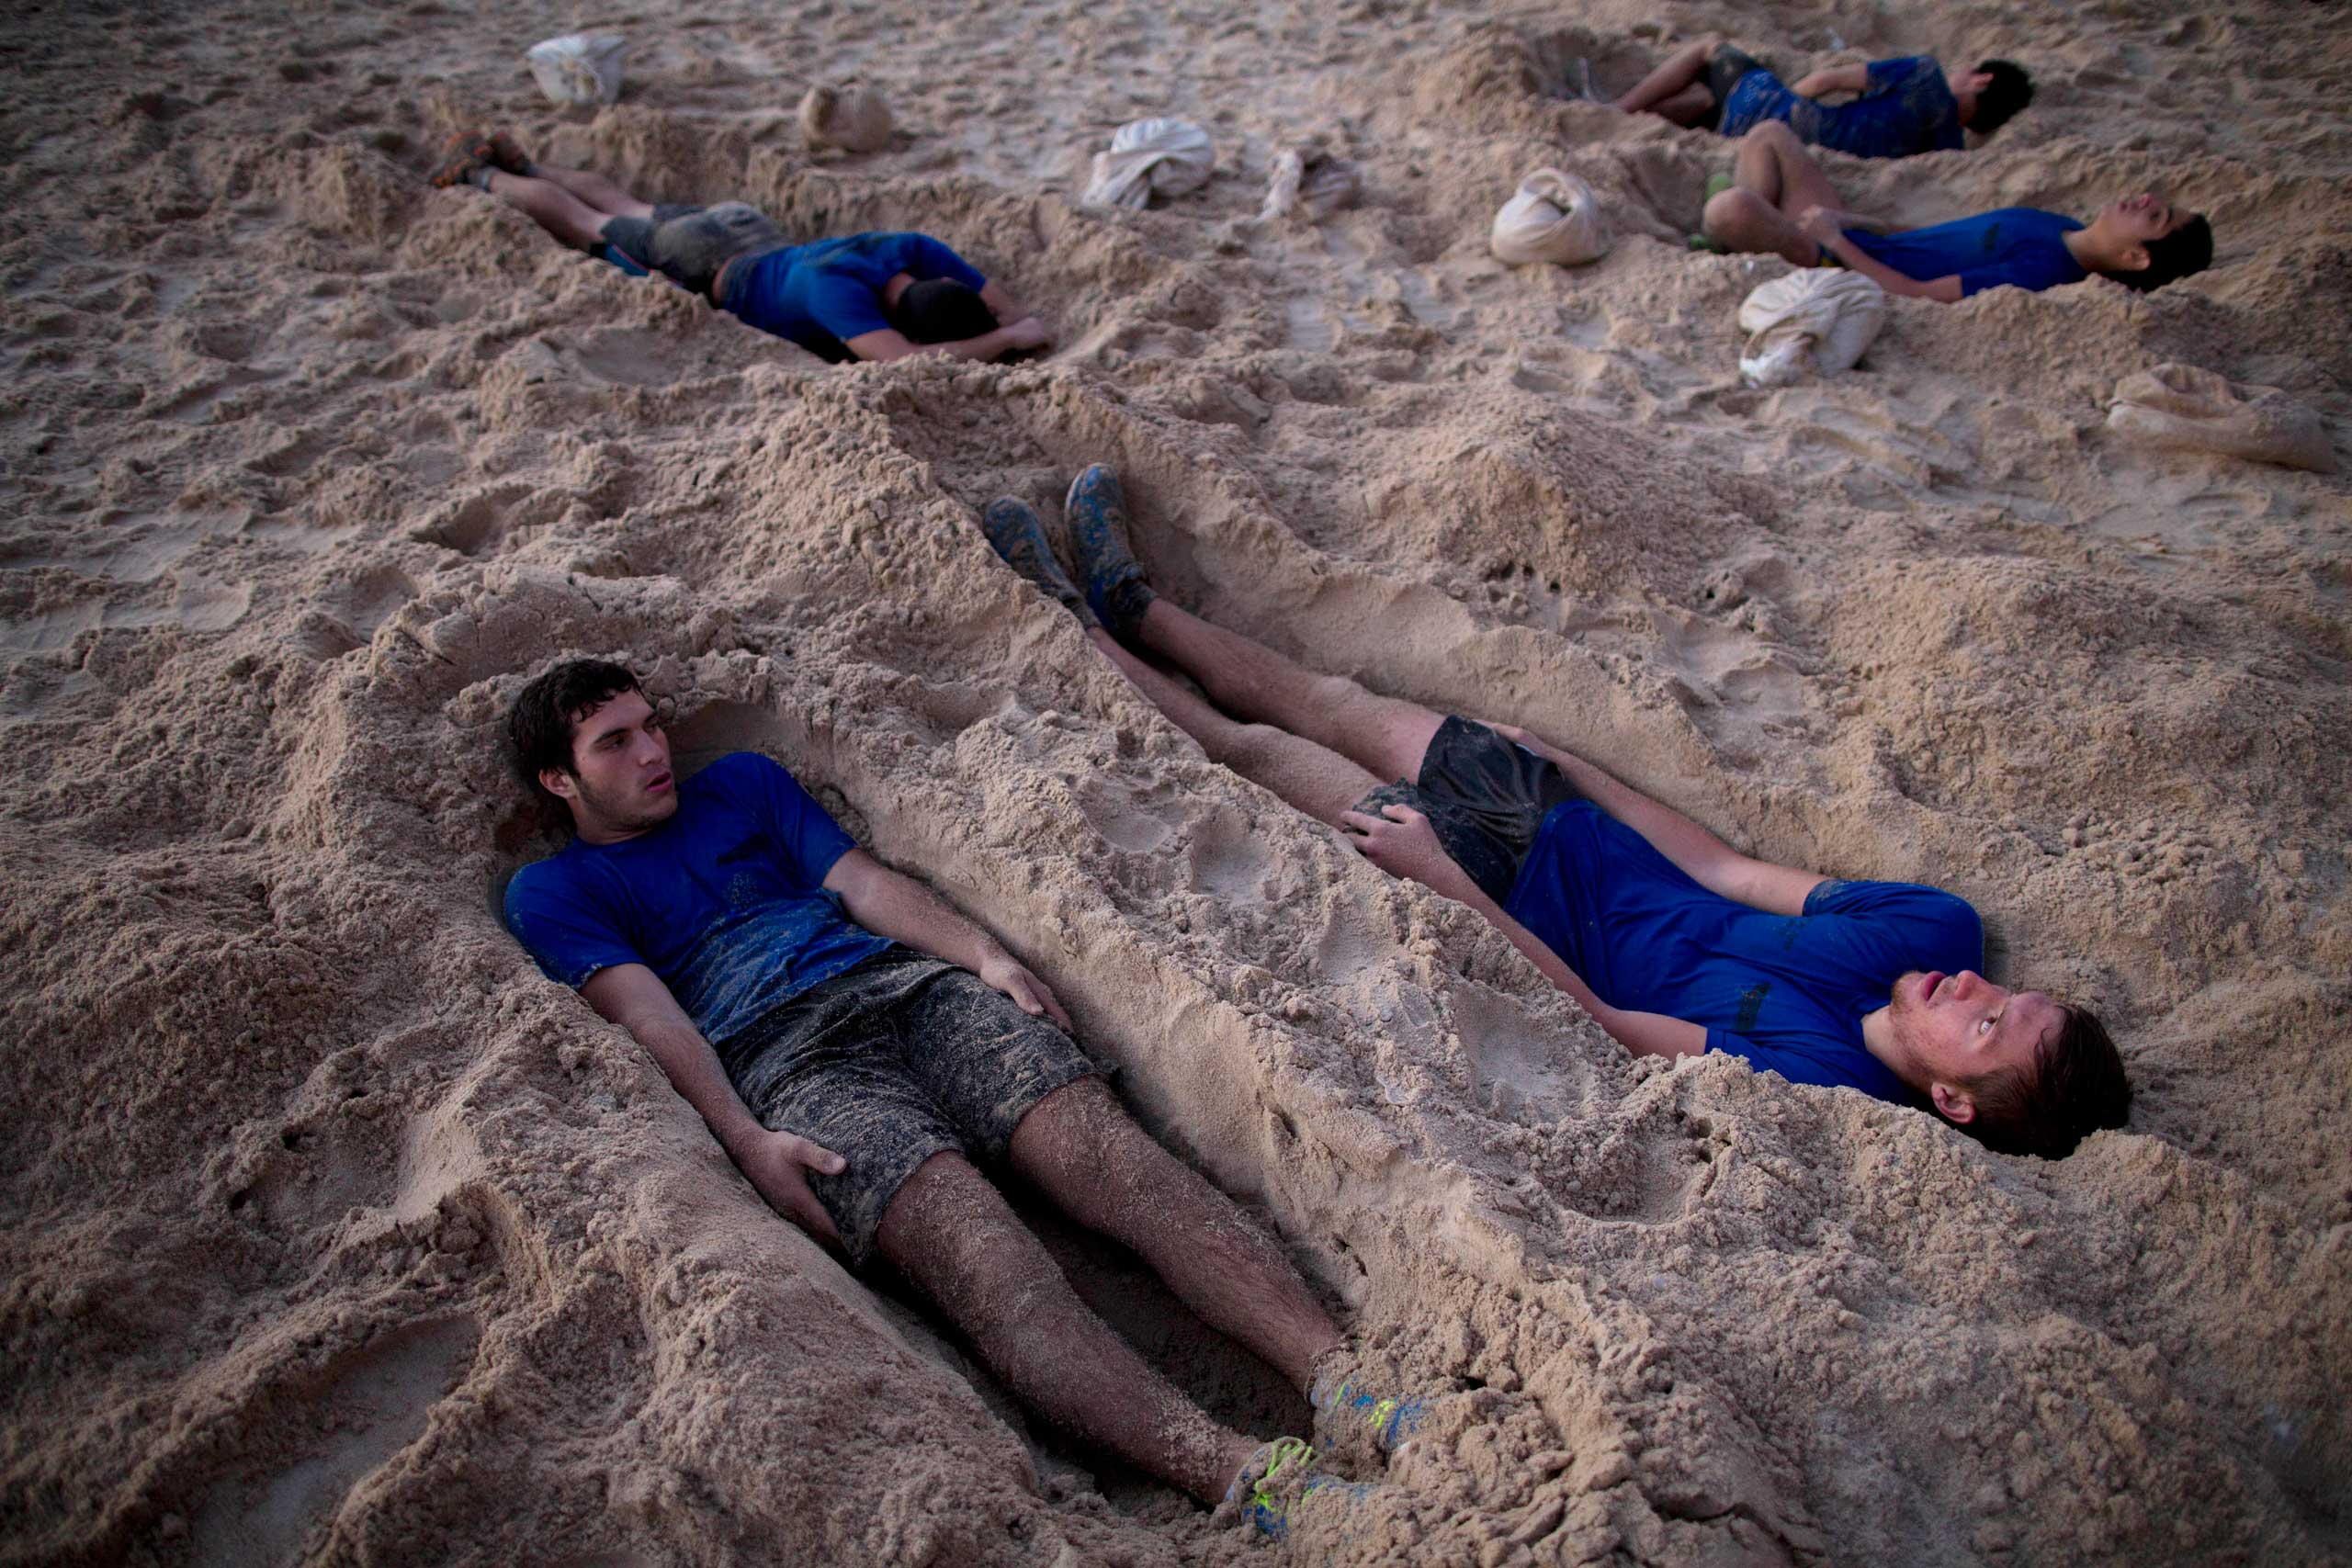 High-school seniors preparing to join the Israeli military later this year lie in foxholes during training in Shefayim, central Israel, March 5, 2015.